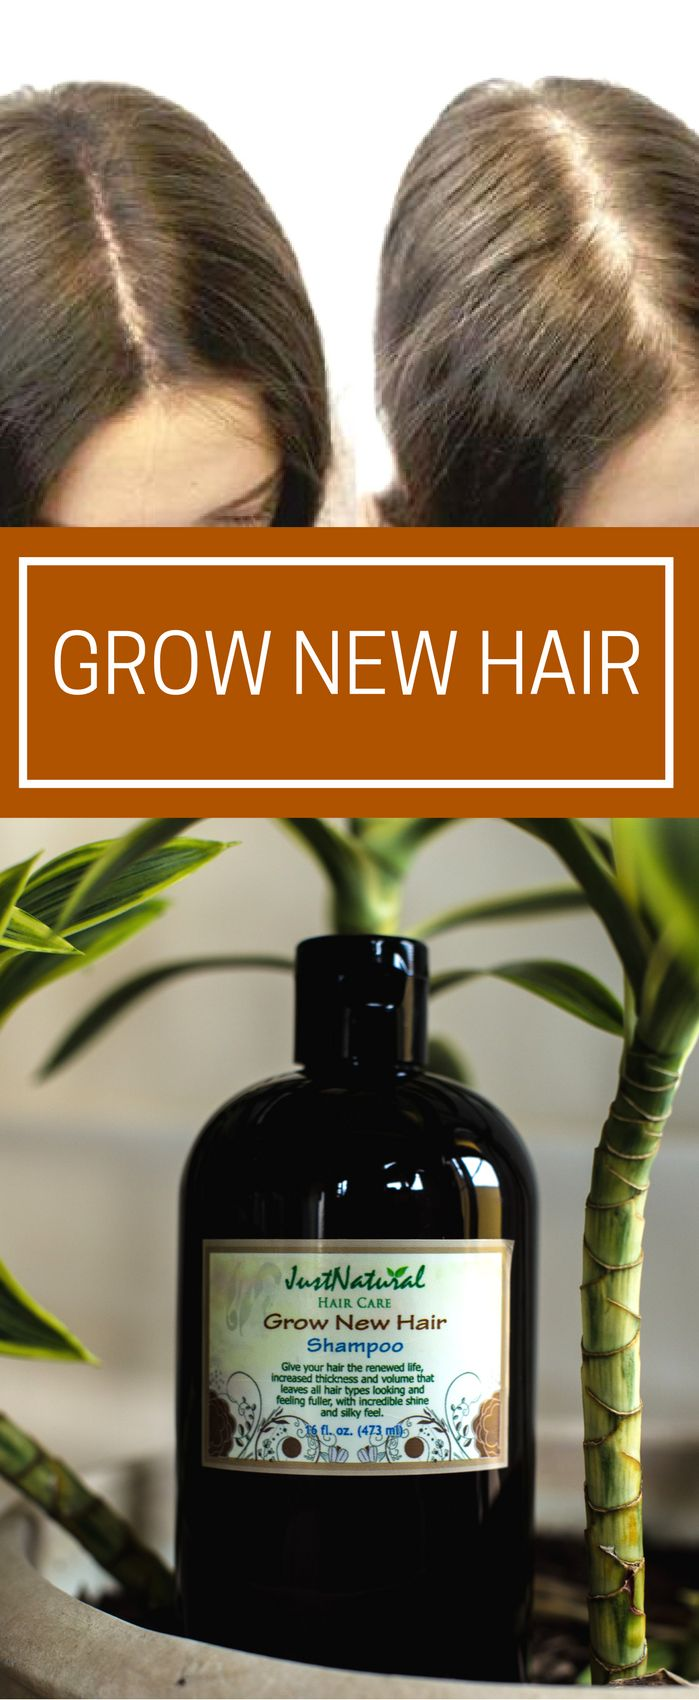 Grow New Hair Shampoo / I have used several products to help with my thinning ha...